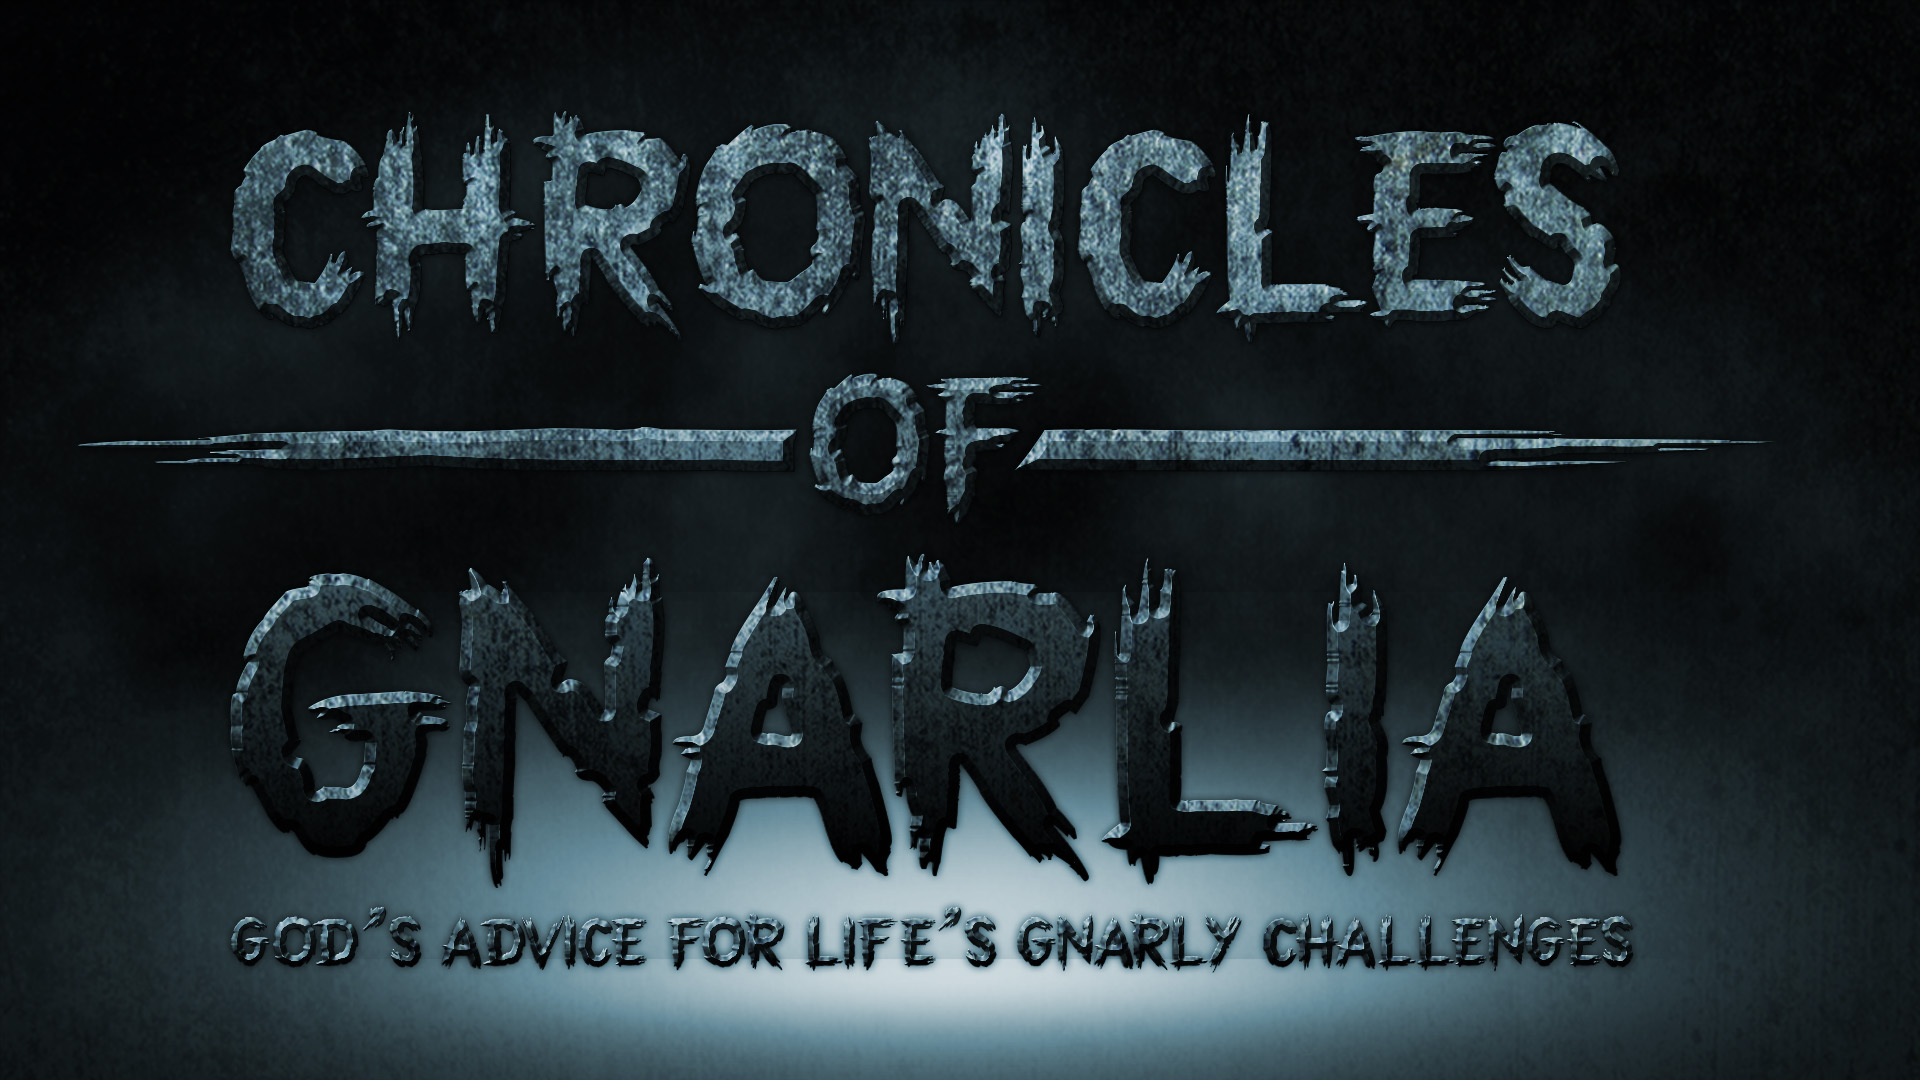 chronicles of gnarlia FULL ART.jpg